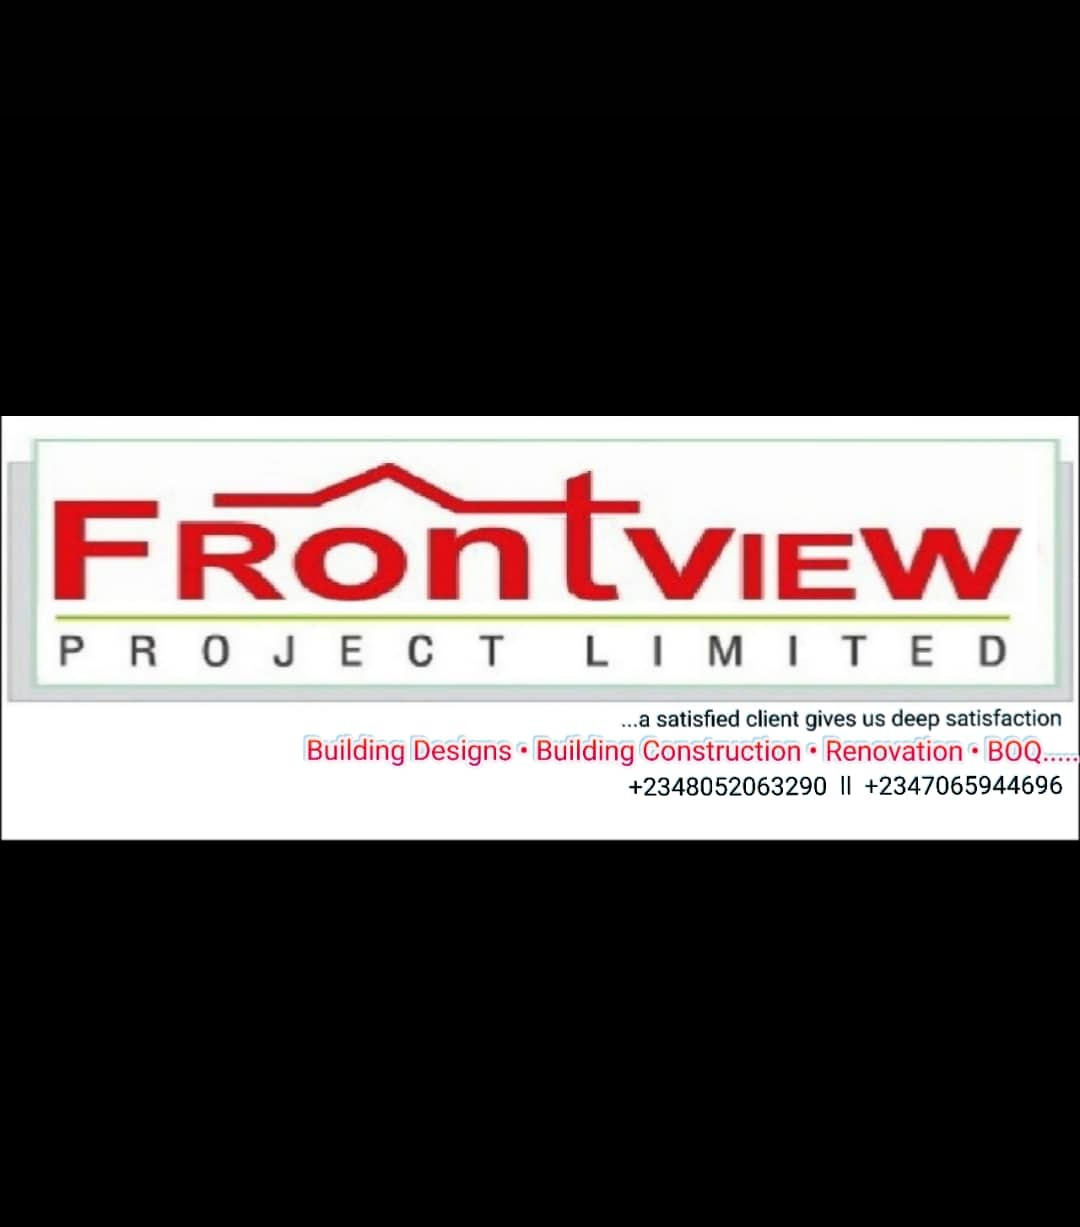 Frontview Project Ltd provider